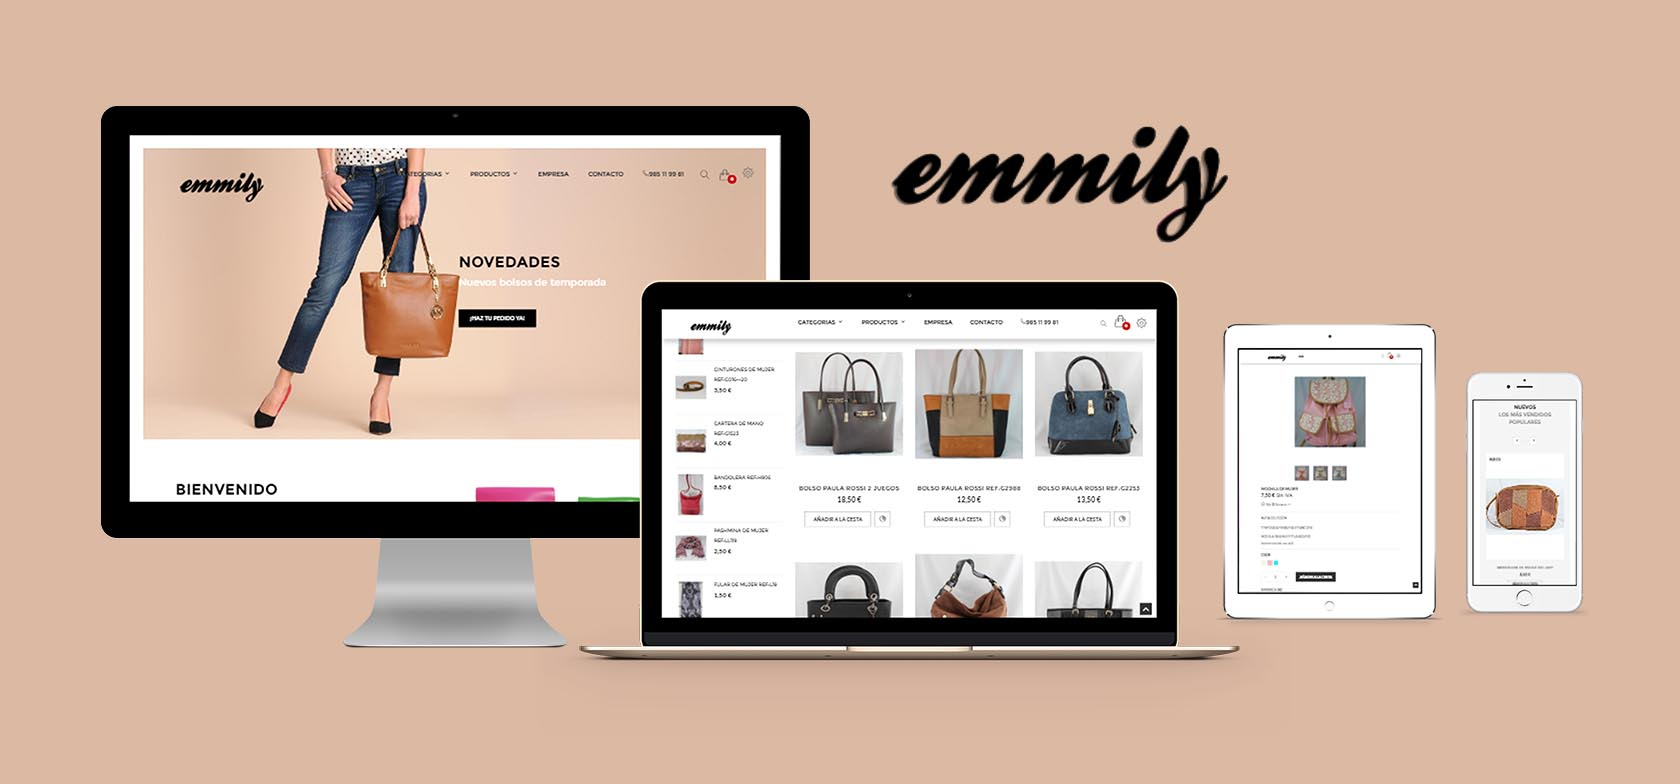 Bolsosemmily e-Commerce website - designed by Eduardo Morales